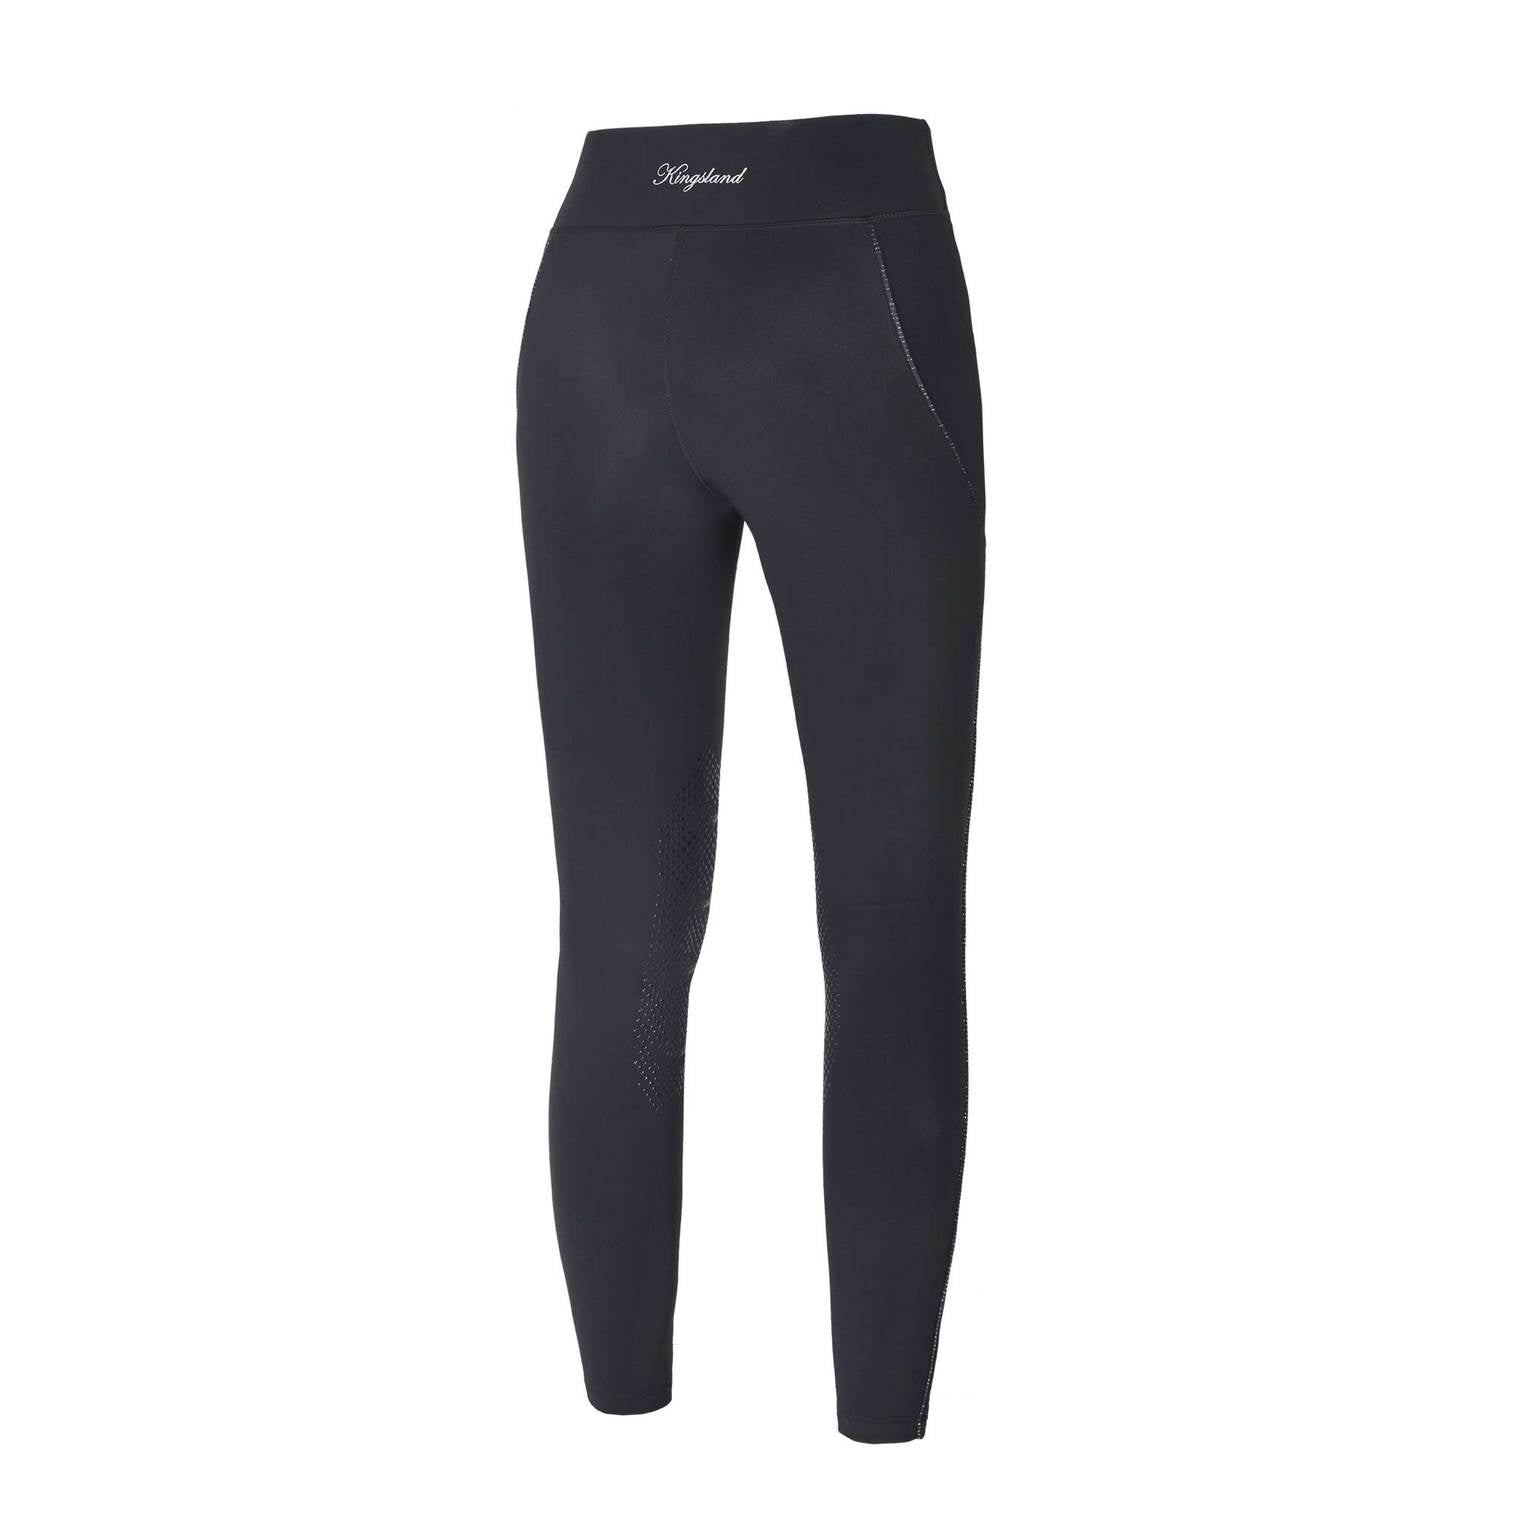 Kingsland Katinka Knee Grip Riding Tights